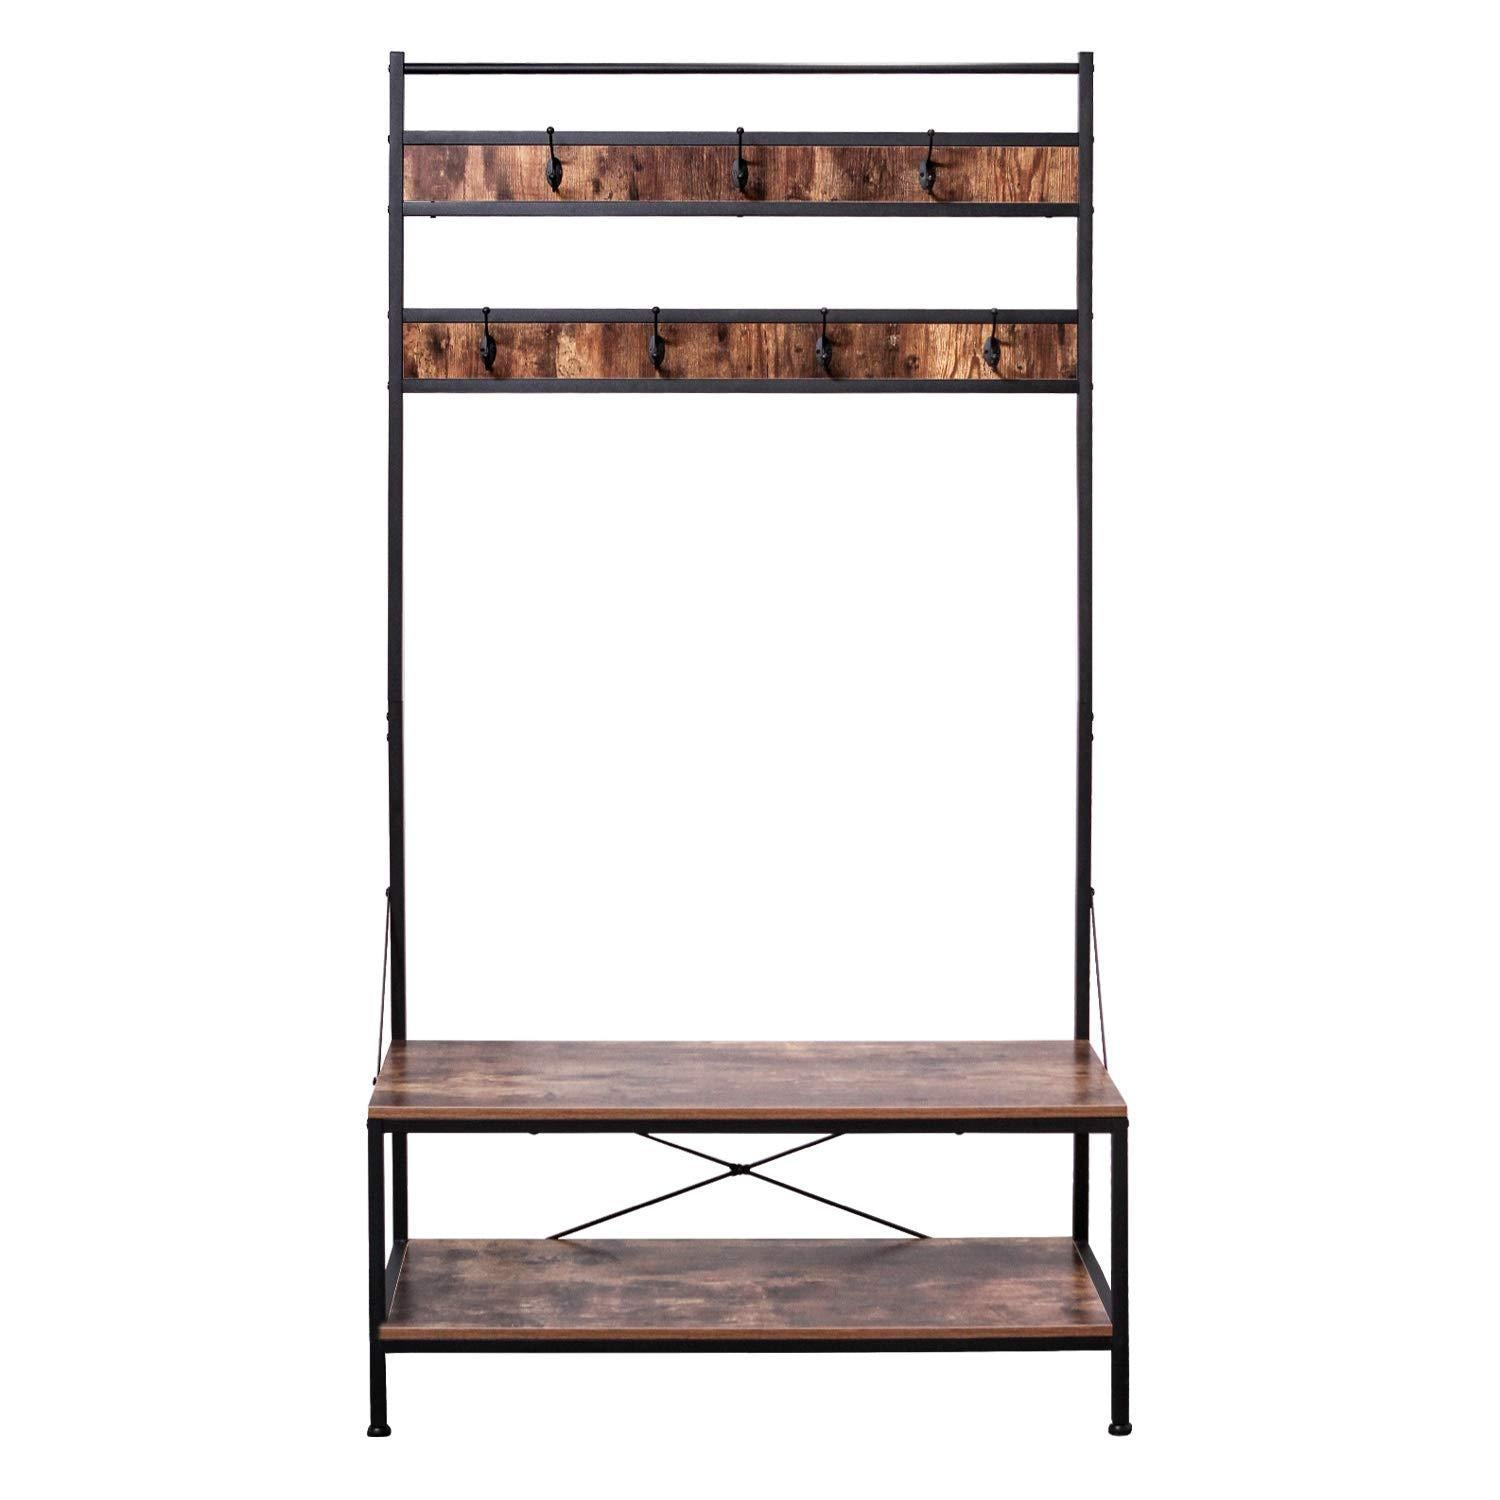 Explore ironck coat rack free standing hall tree industrial entryway organizer coat stand with storage bench mdf board multifunctional sturdy metal frame large size